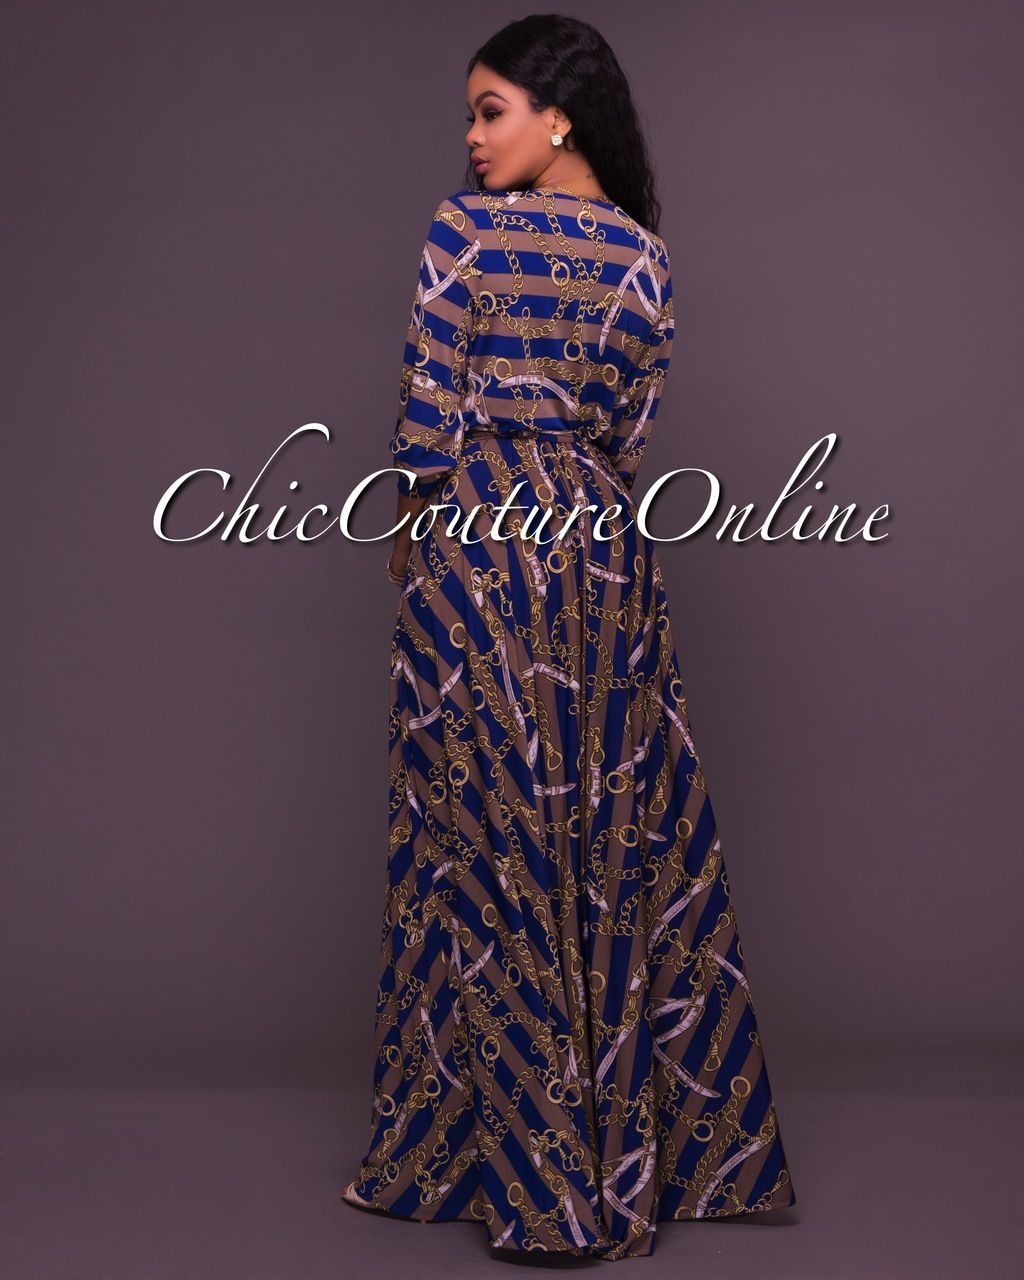 5a3c2b8ee6a Chic Couture Online - Bailee Blue Chain Print Belted Maxi Dress